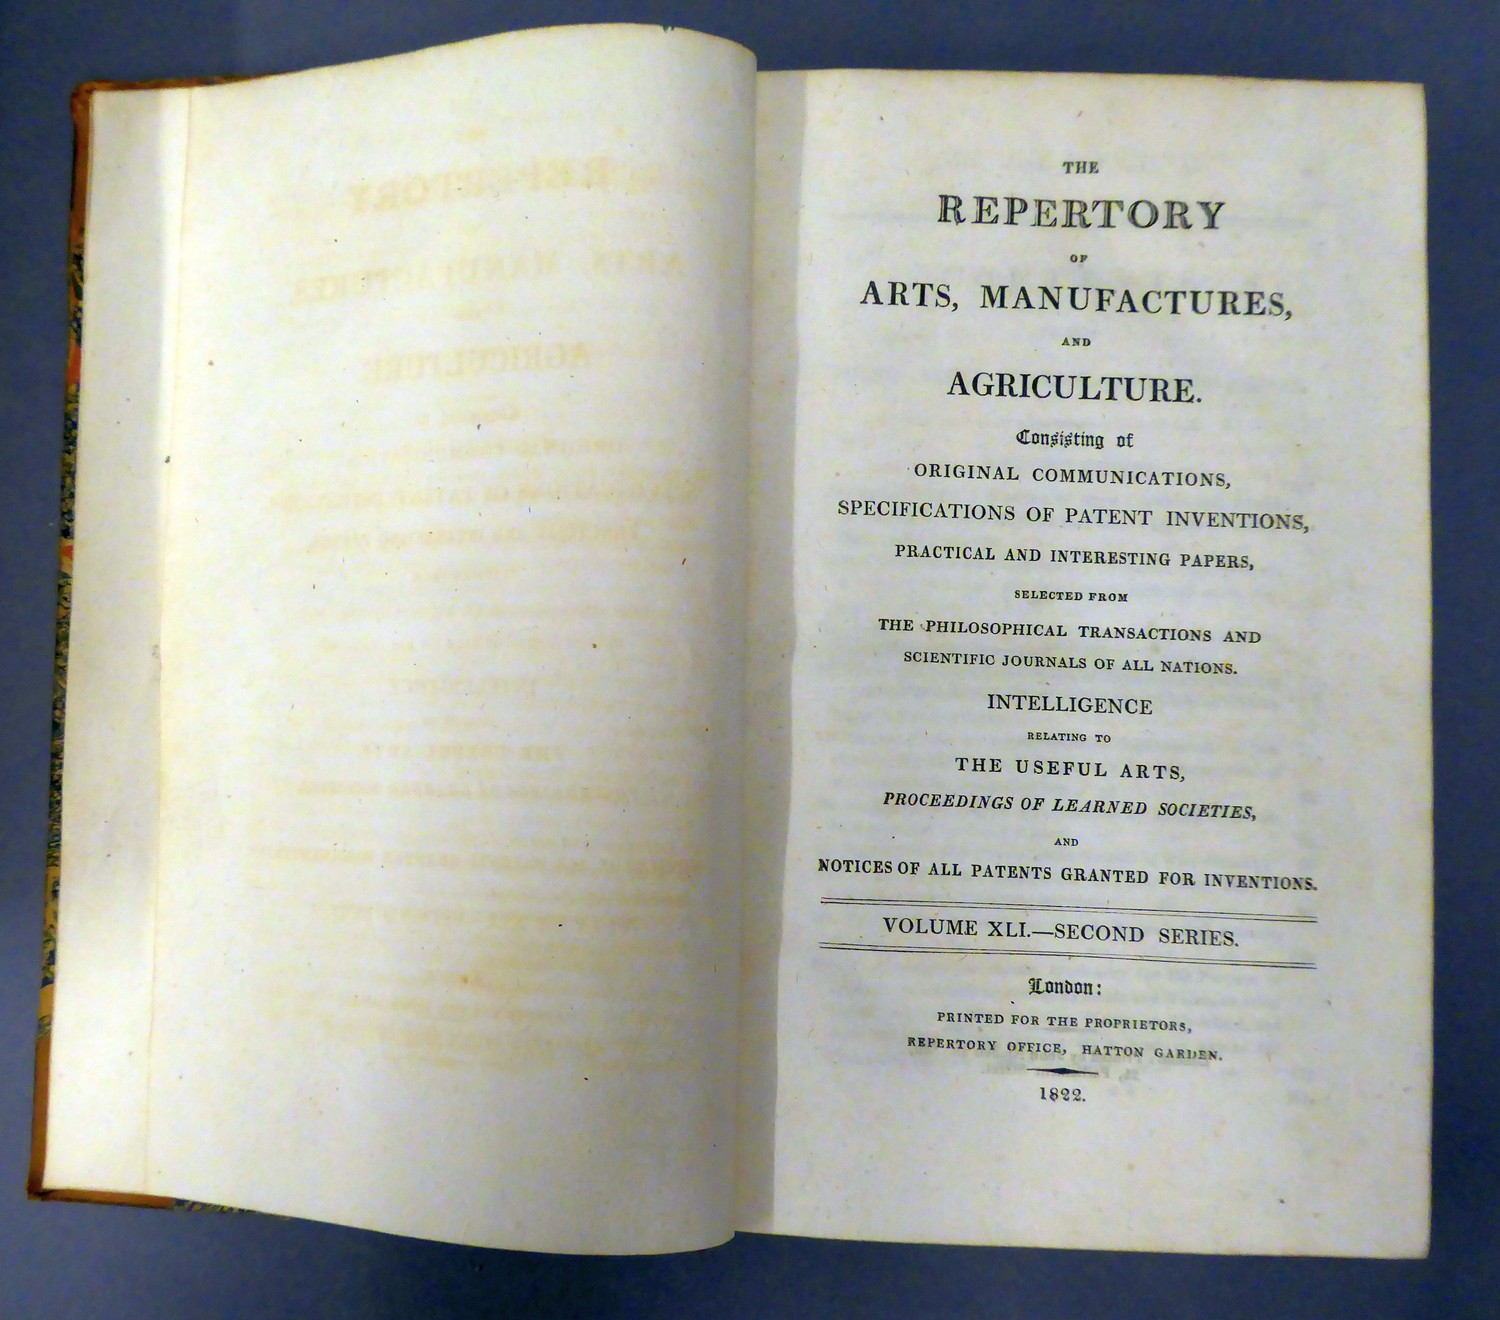 Barnabae Itinerarium, or Barnabee?s Journal, seventh edition, printed Harding, Taylor, 1818, rebound - Image 3 of 4